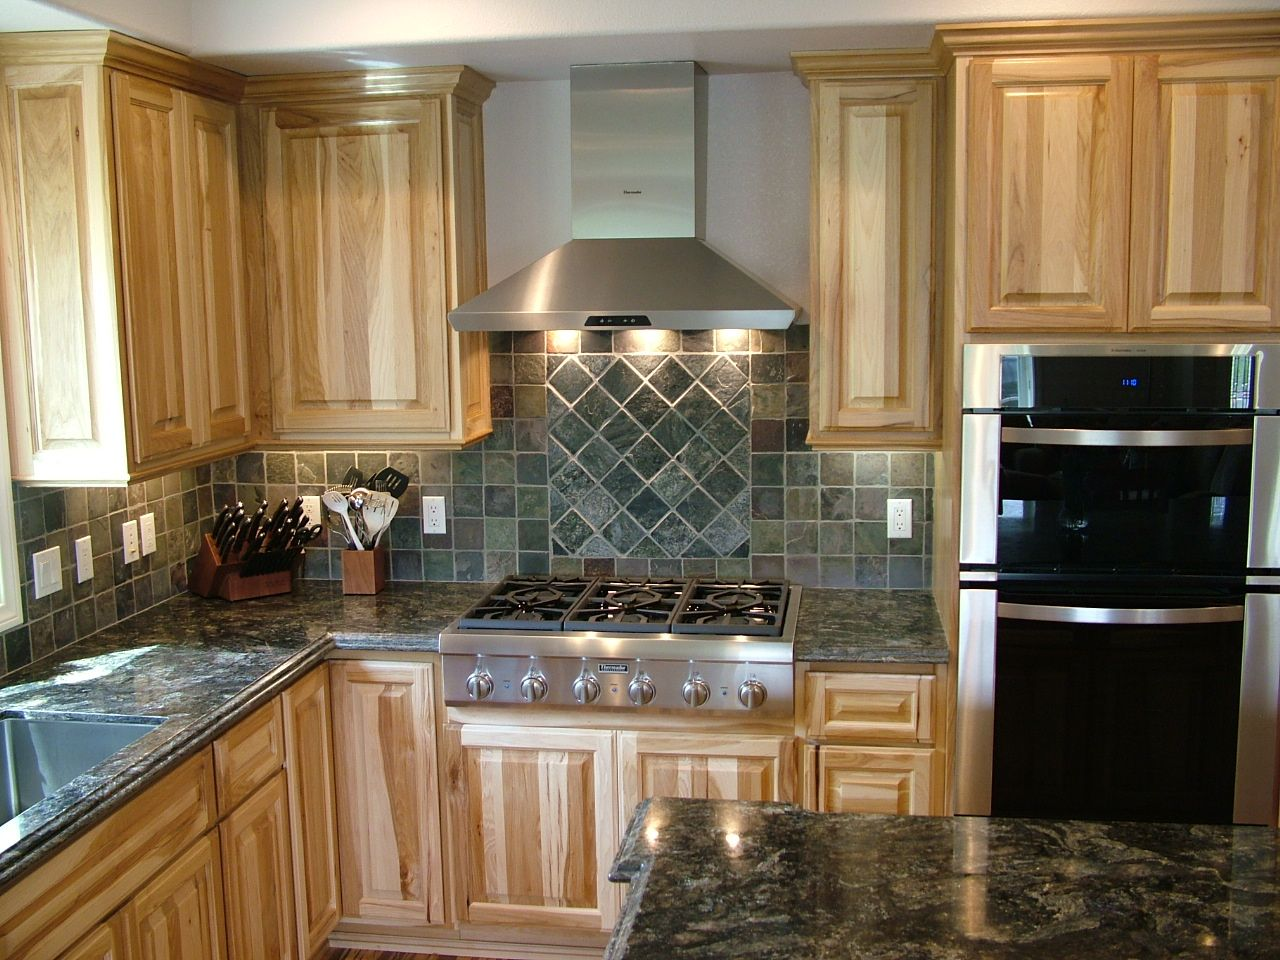 Hickory Kitchen Cabinets Love The Cabinets Counter Stainless Stove And Grey Paint Home